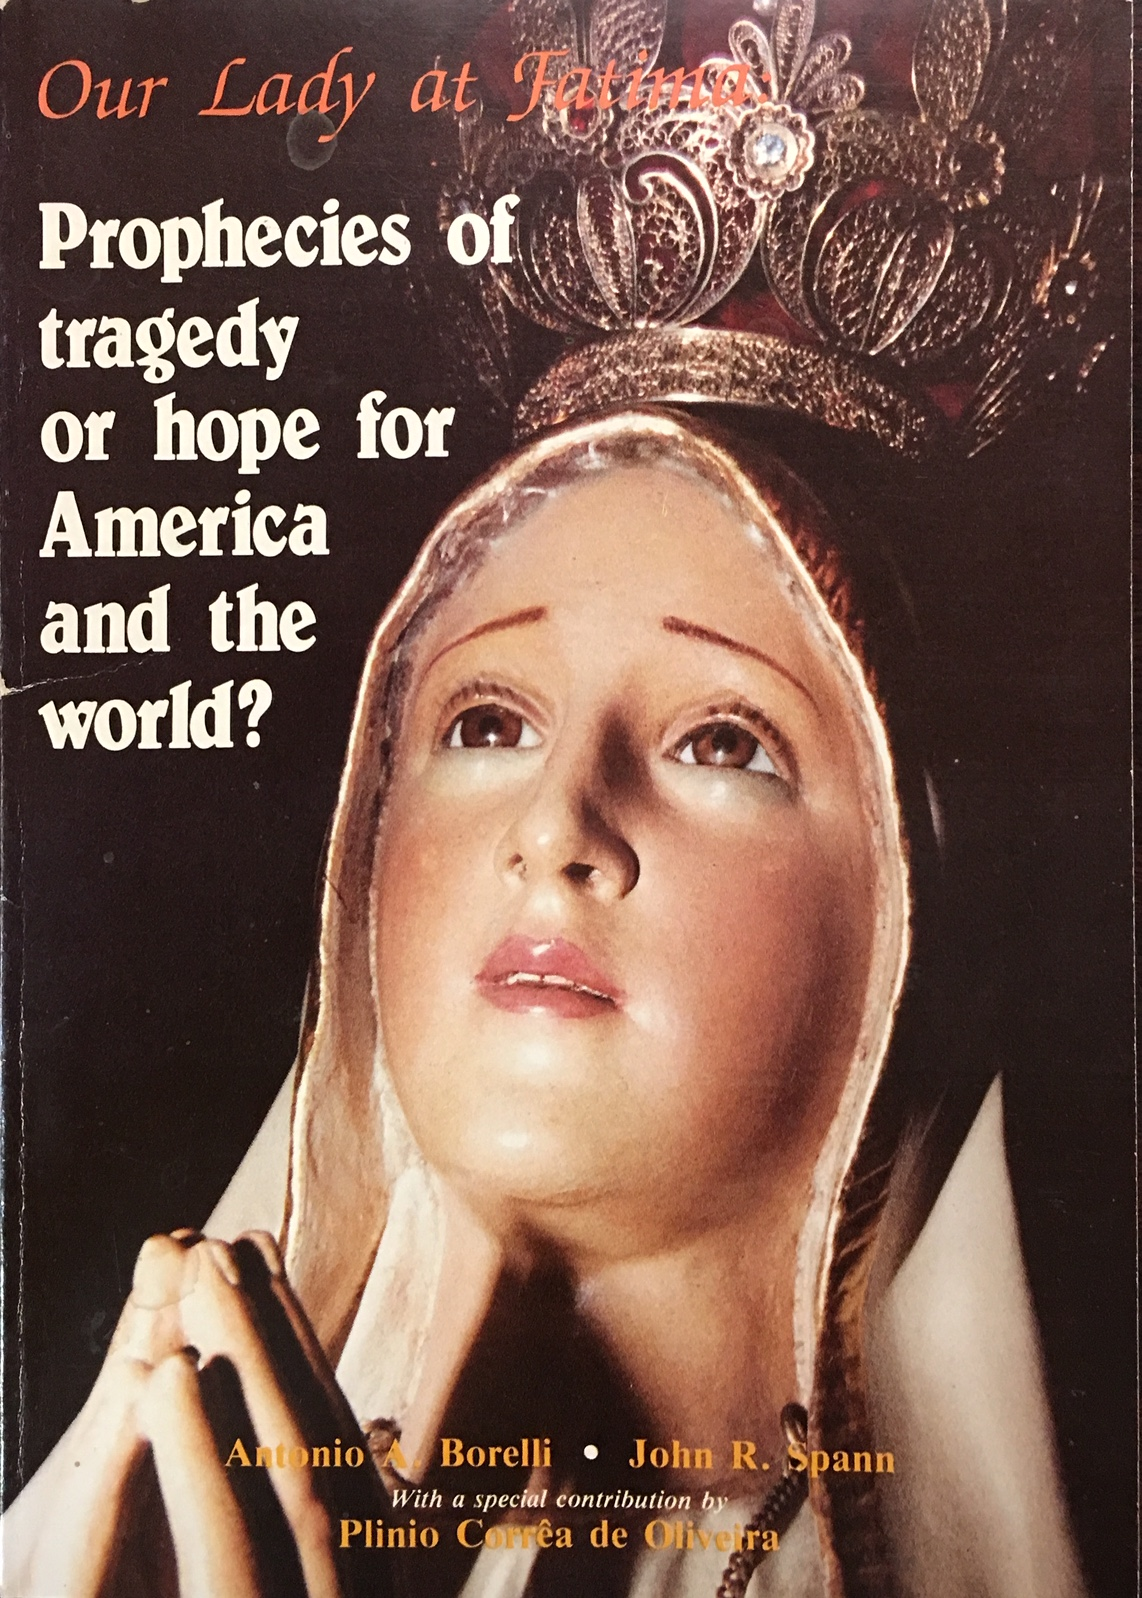 Image for Our Lady at Fatima: Prophecies of Tragedy Or Hope for America and the World?